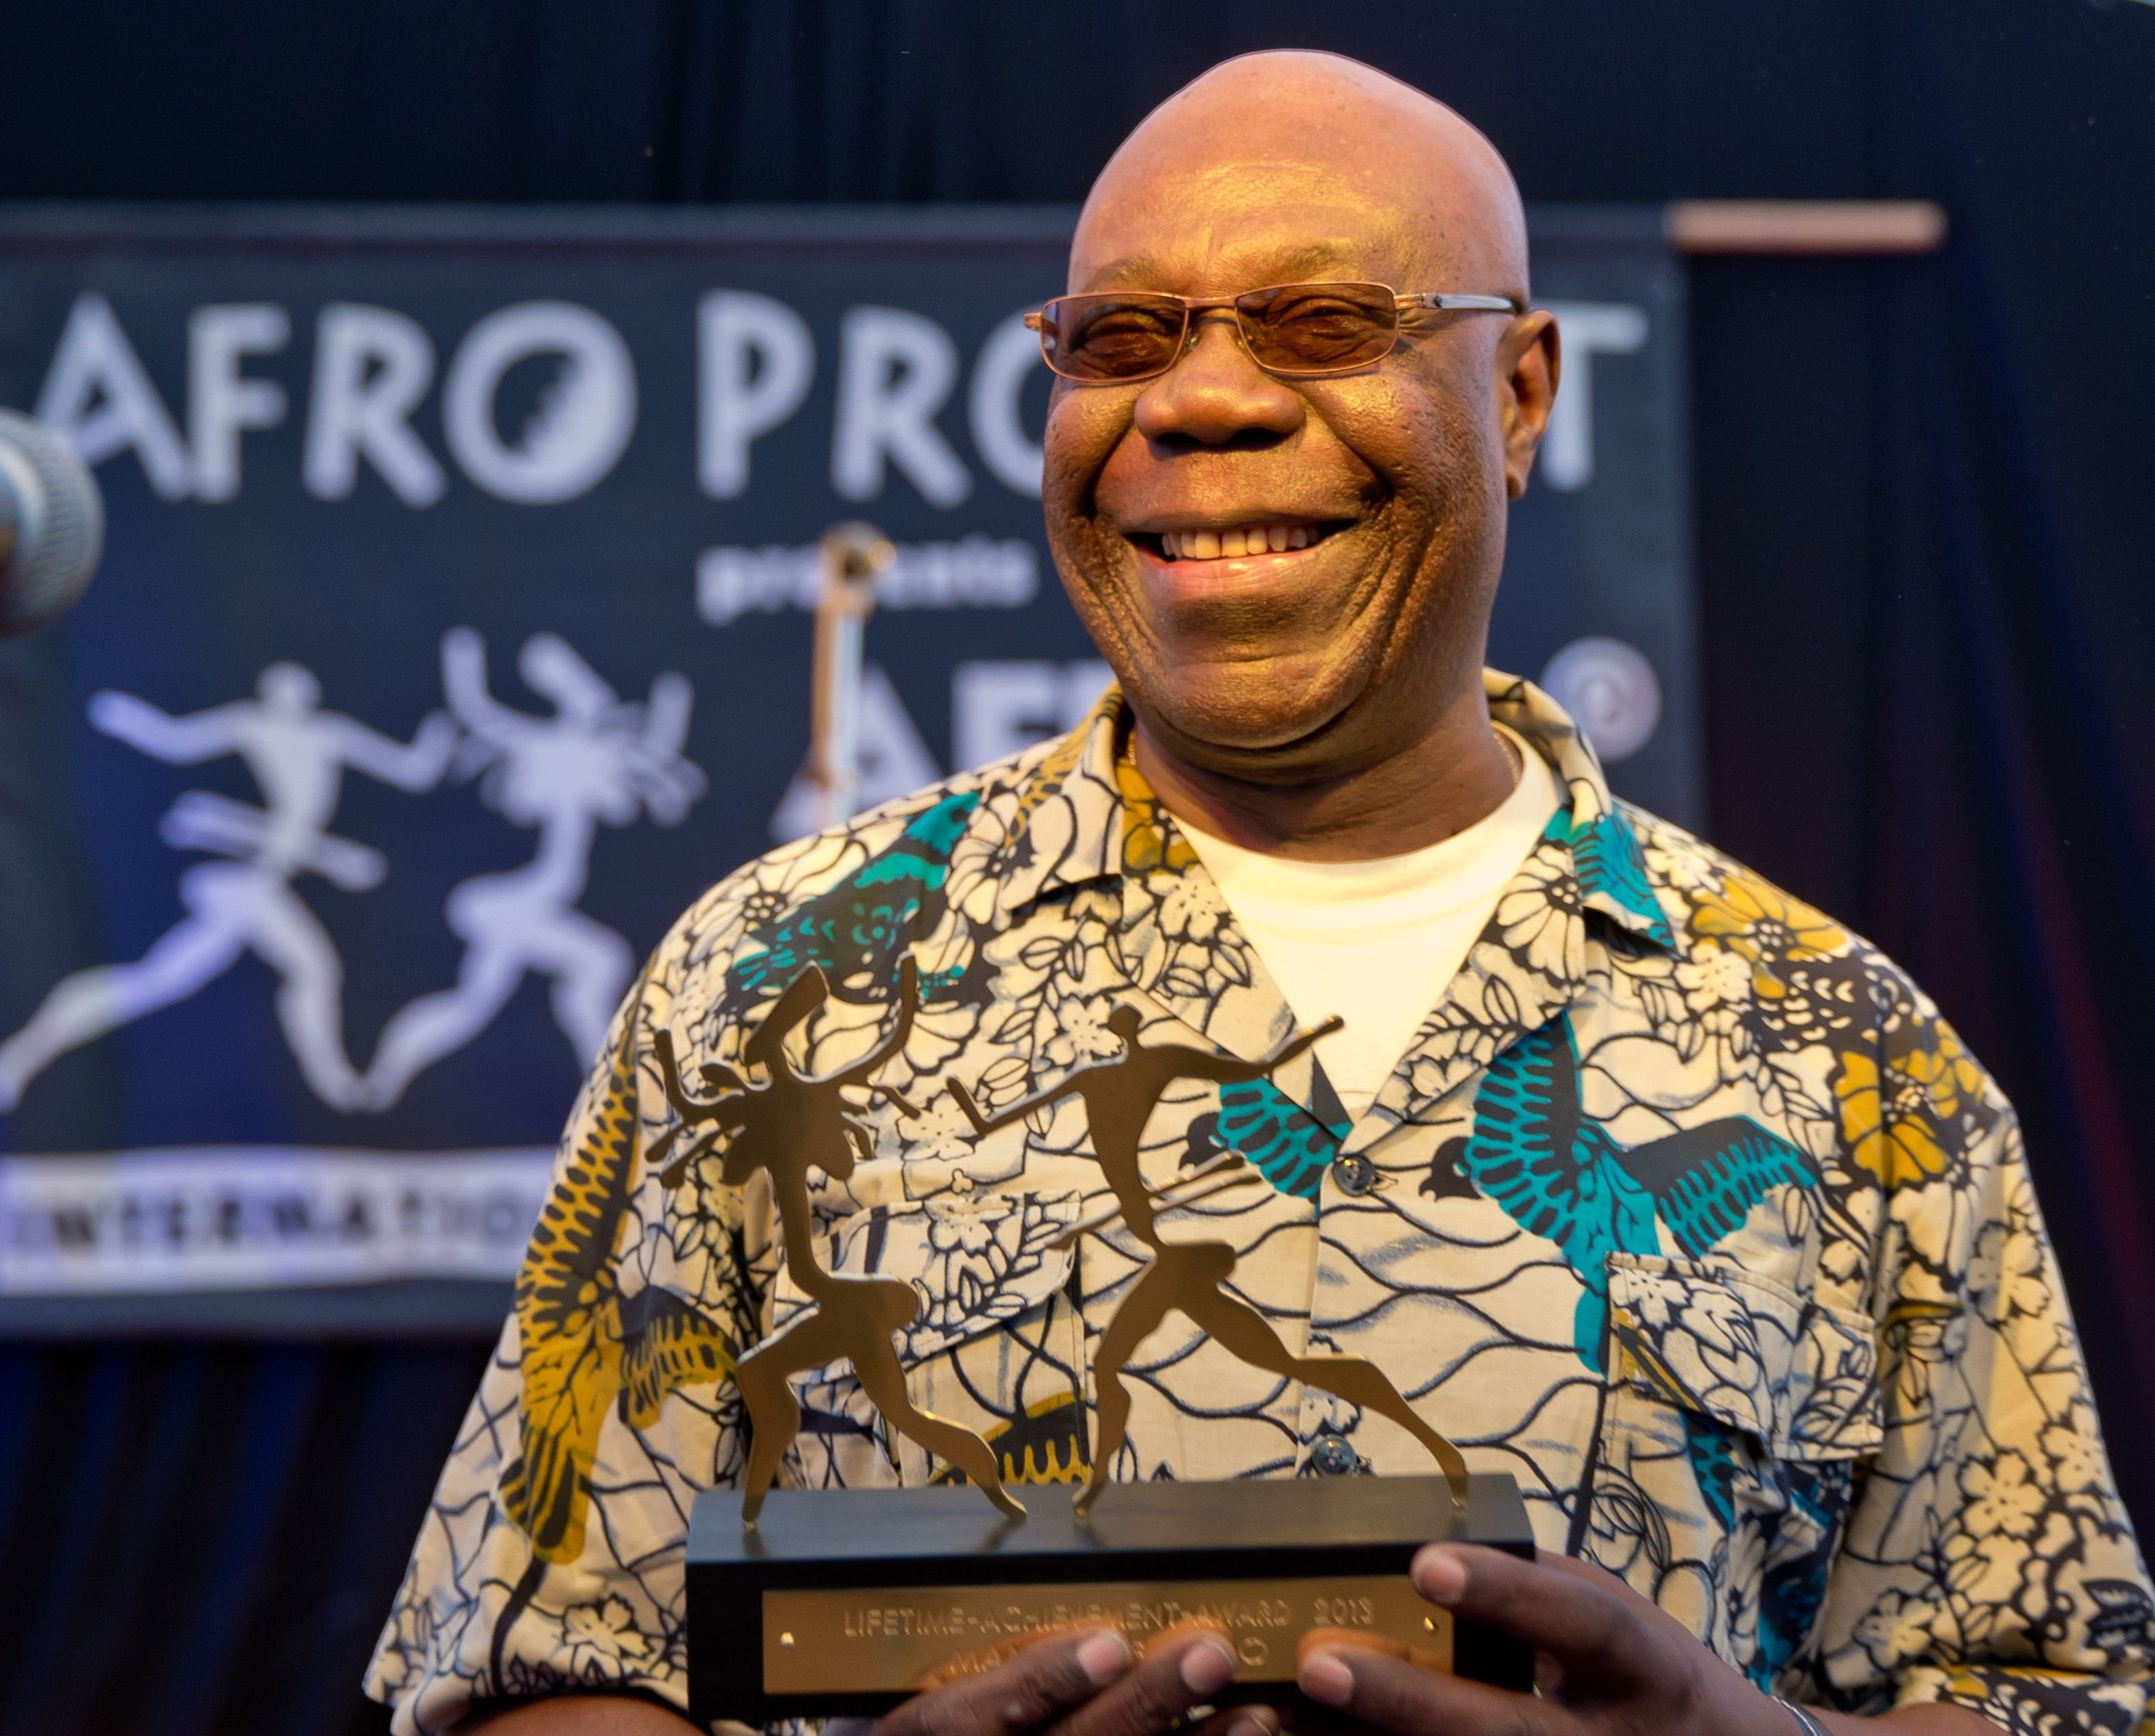 Manu Dibango receiving his Lifetime Achievement Award during the opening of the 25th Africa festival in Germany in June 2013. | Photo: Getty Images